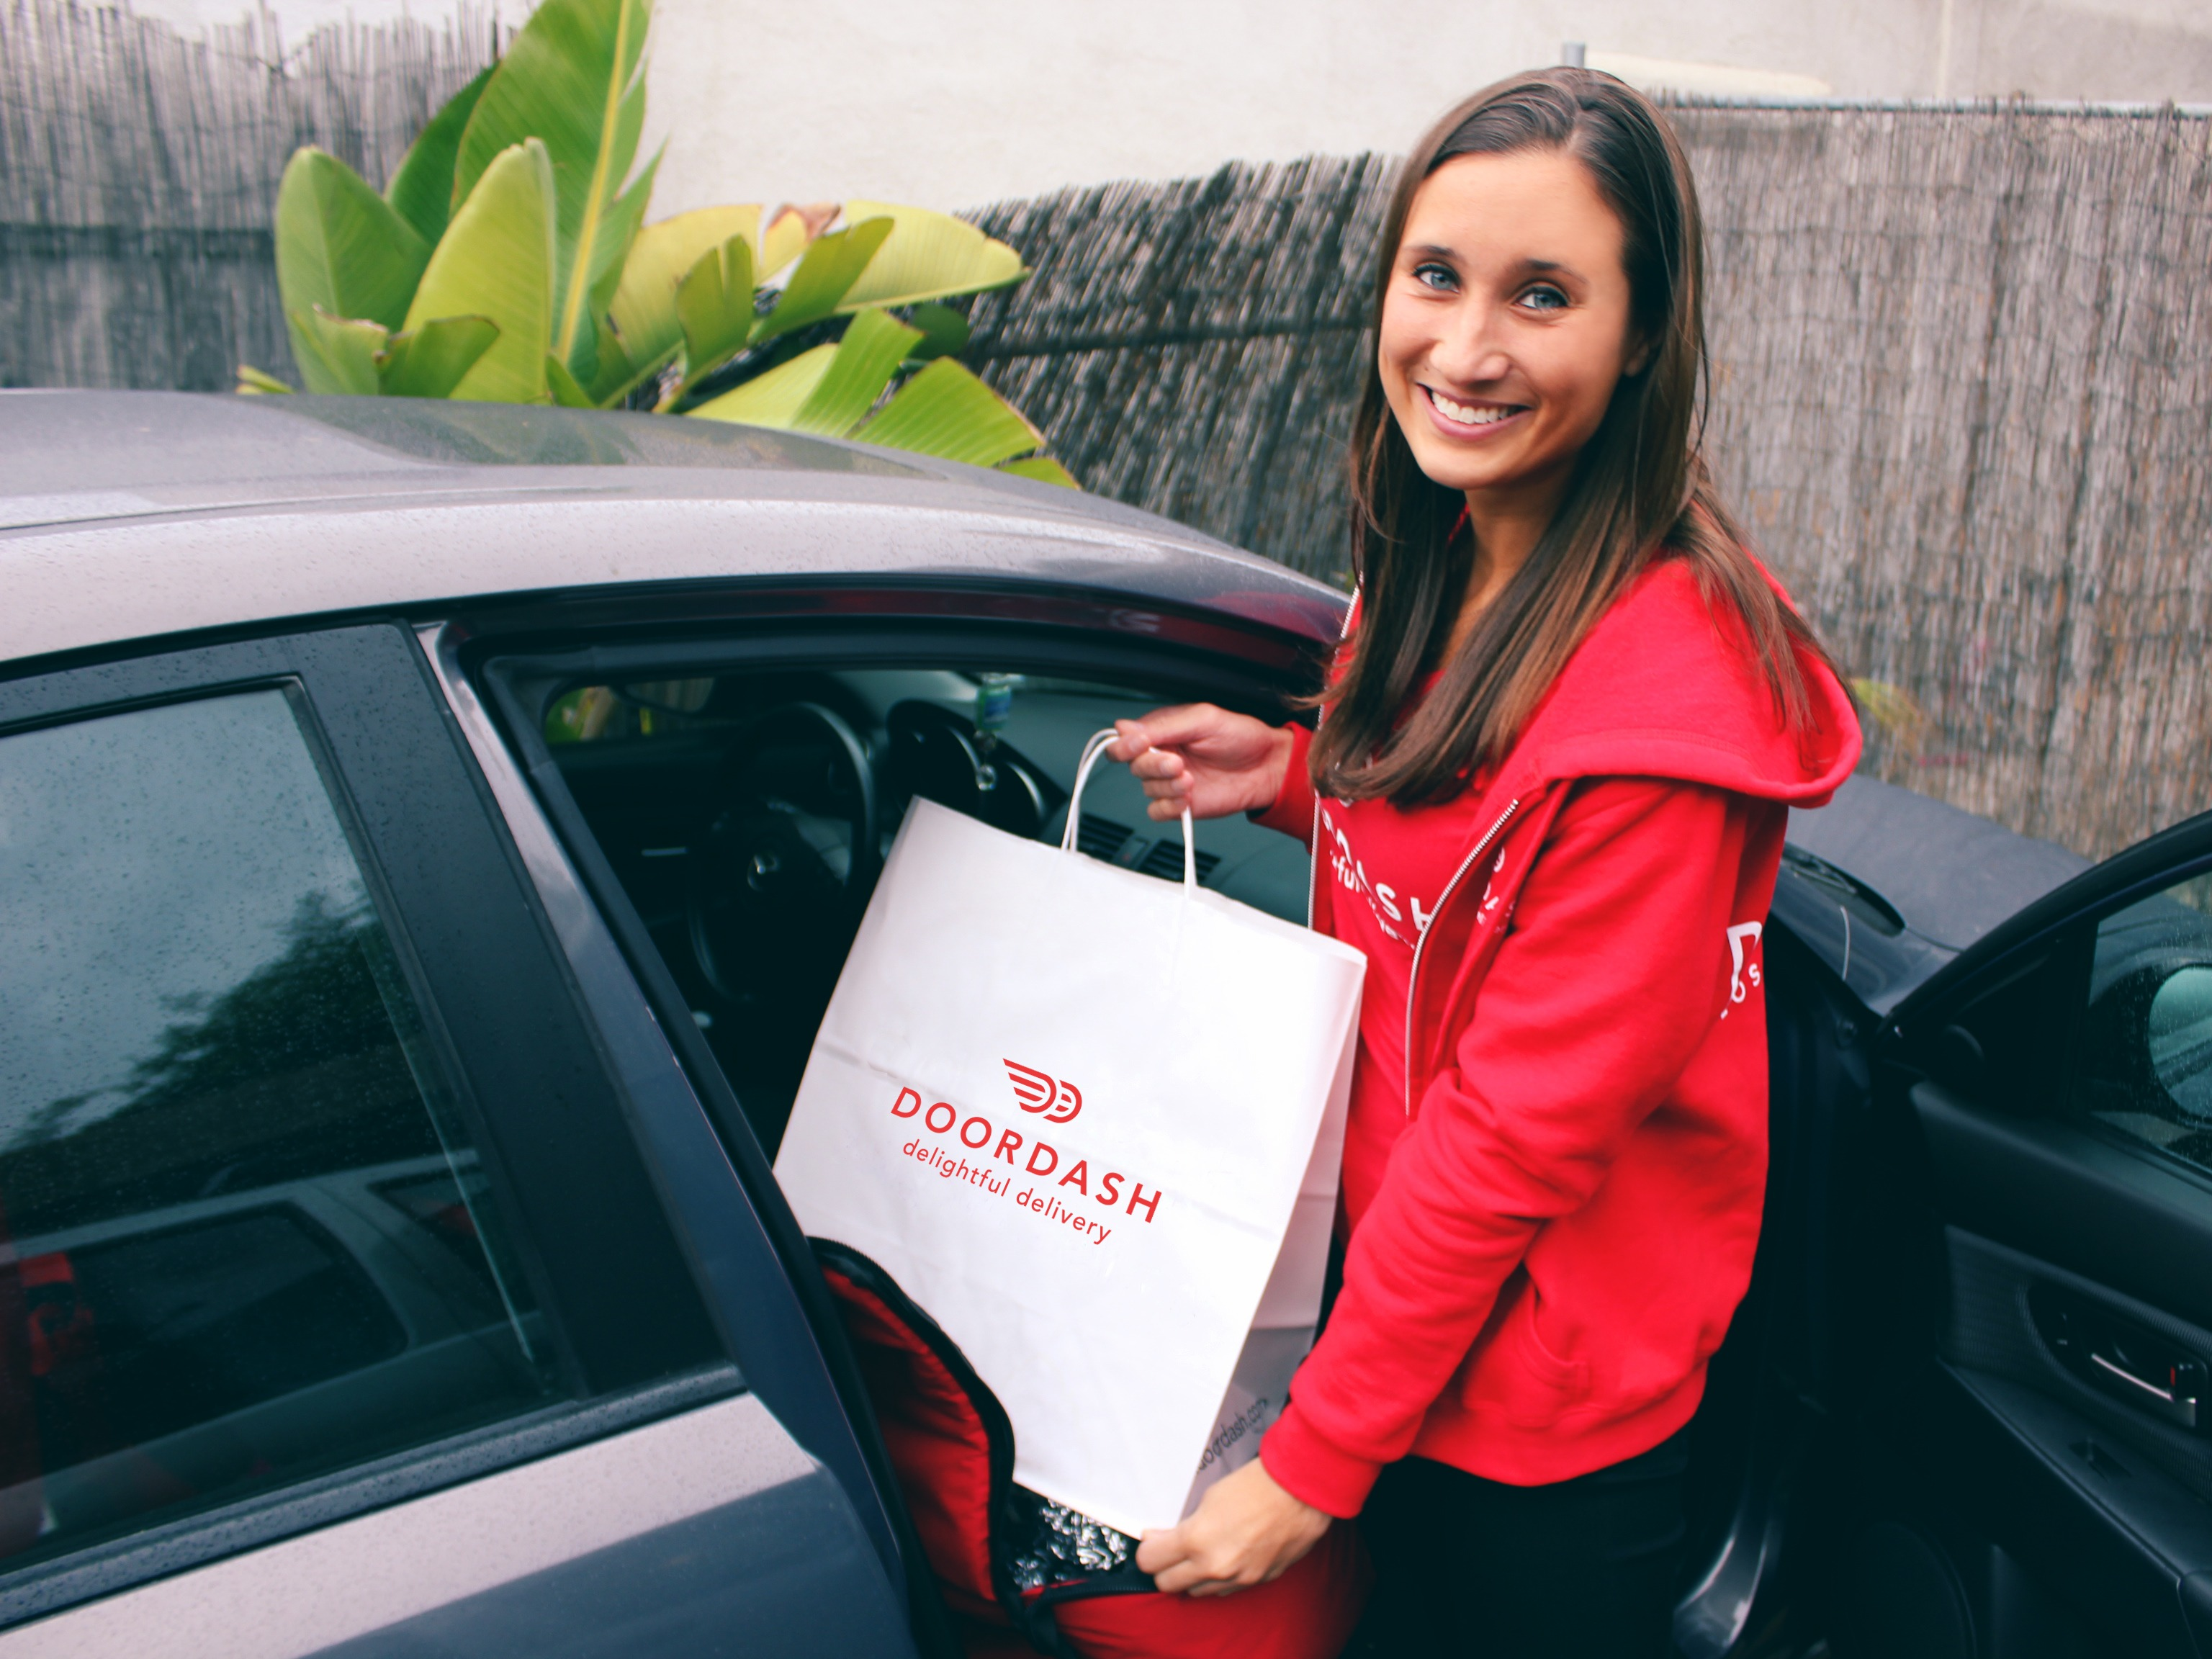 delivery-startup-doordash-is-promising-to-send-7-eleven-food-and-drinks-to-your-home-in-45-minutes-or-less